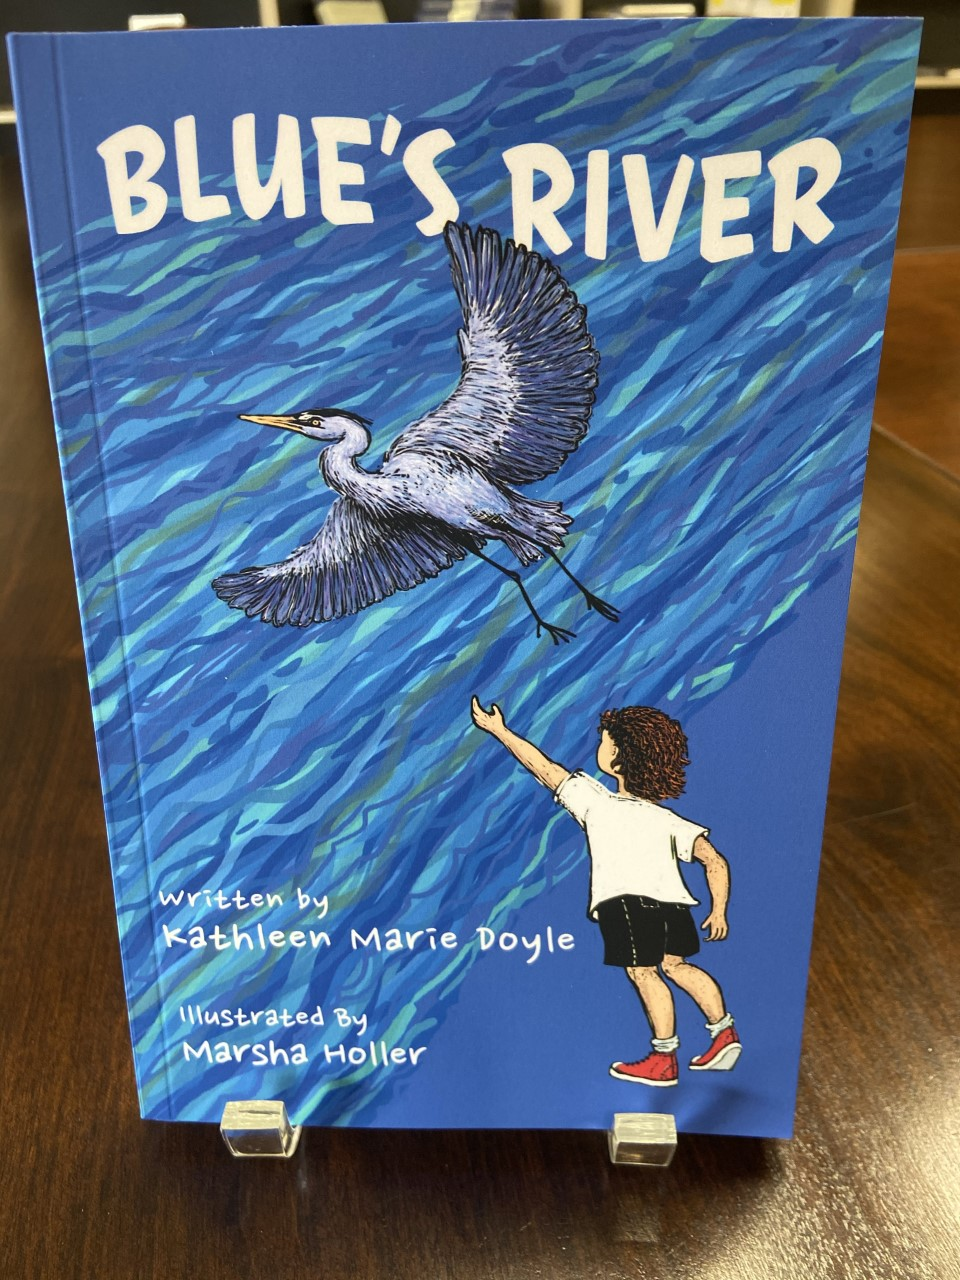 Blue's River, by Kathleen Marie Doyle, 2019, 163 pp. Prices reflect the cost of the book plus S&H fee of $3.